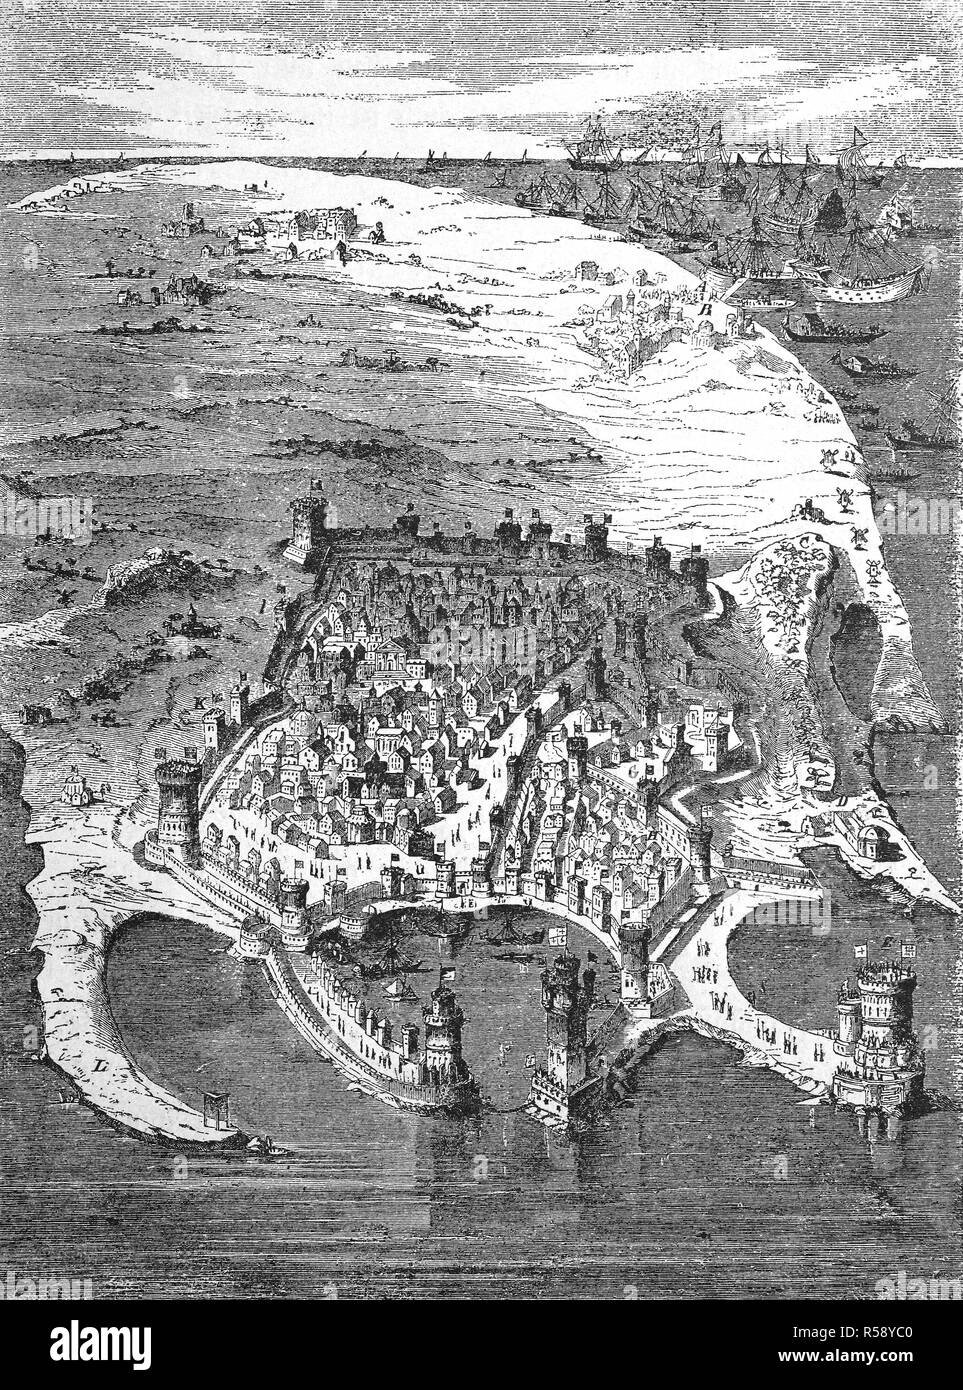 Digital improved reproduction, the island of Rhodos, Greece, in the year 1480, before siege by the Ottomans, Rhodos, Griechenland im Jahre 1480, vor der Belagerung, original print from th 19th century - Stock Image